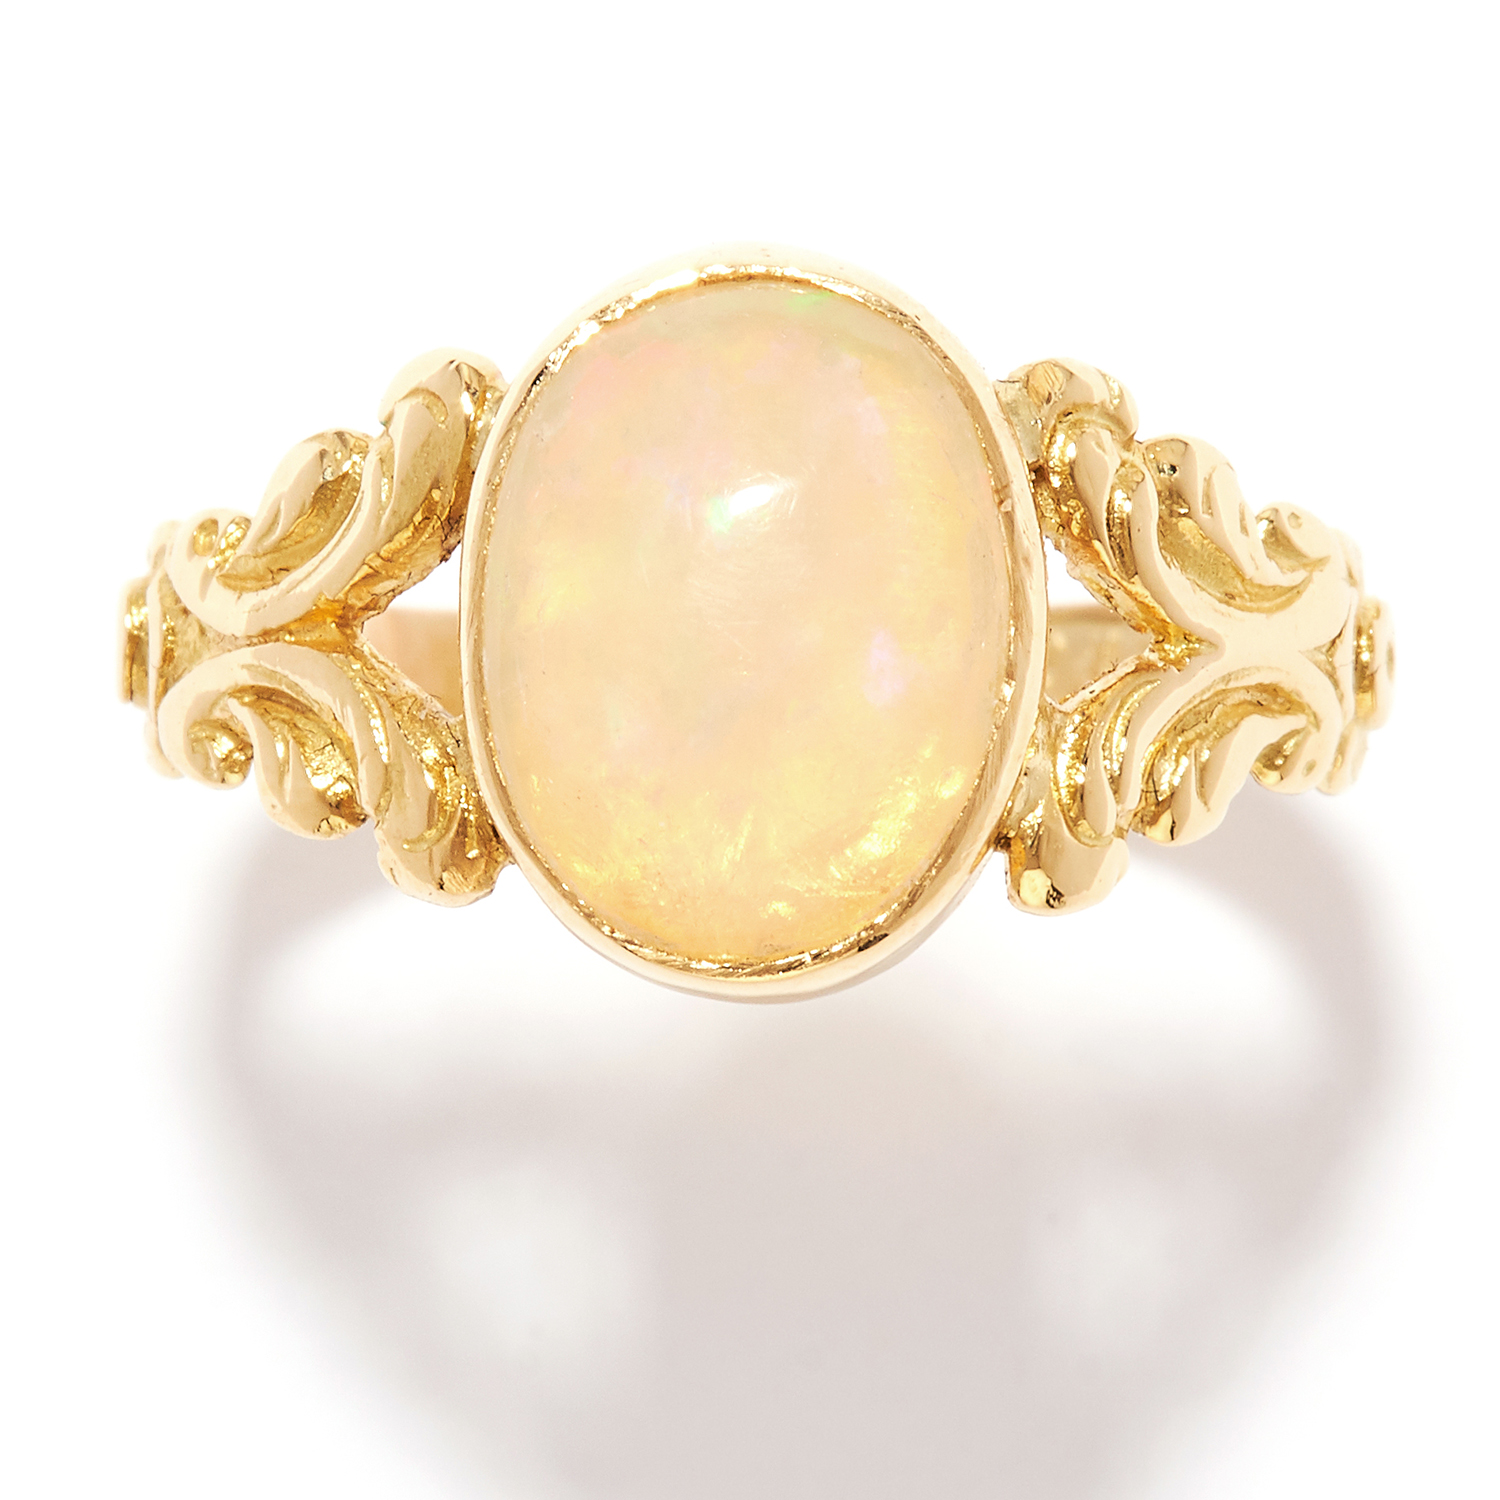 ANTIQUE OPAL DRESS RING in 18ct yellow gold, set with a cabochon opal, British hallmarks, size N /